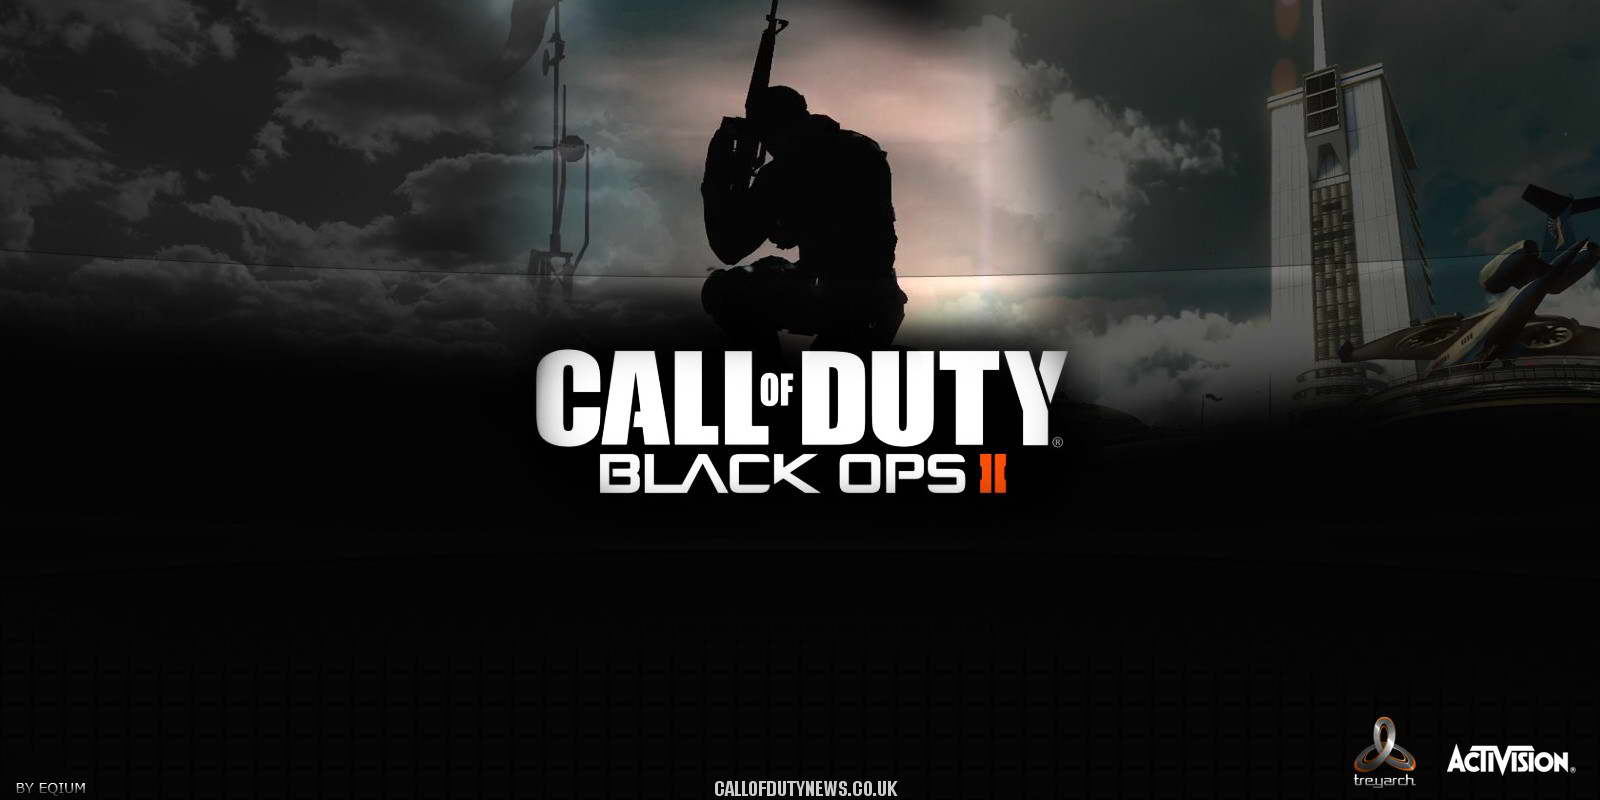 Call-of-Duty-Black-Ops-hd-wallpaper-wp340184